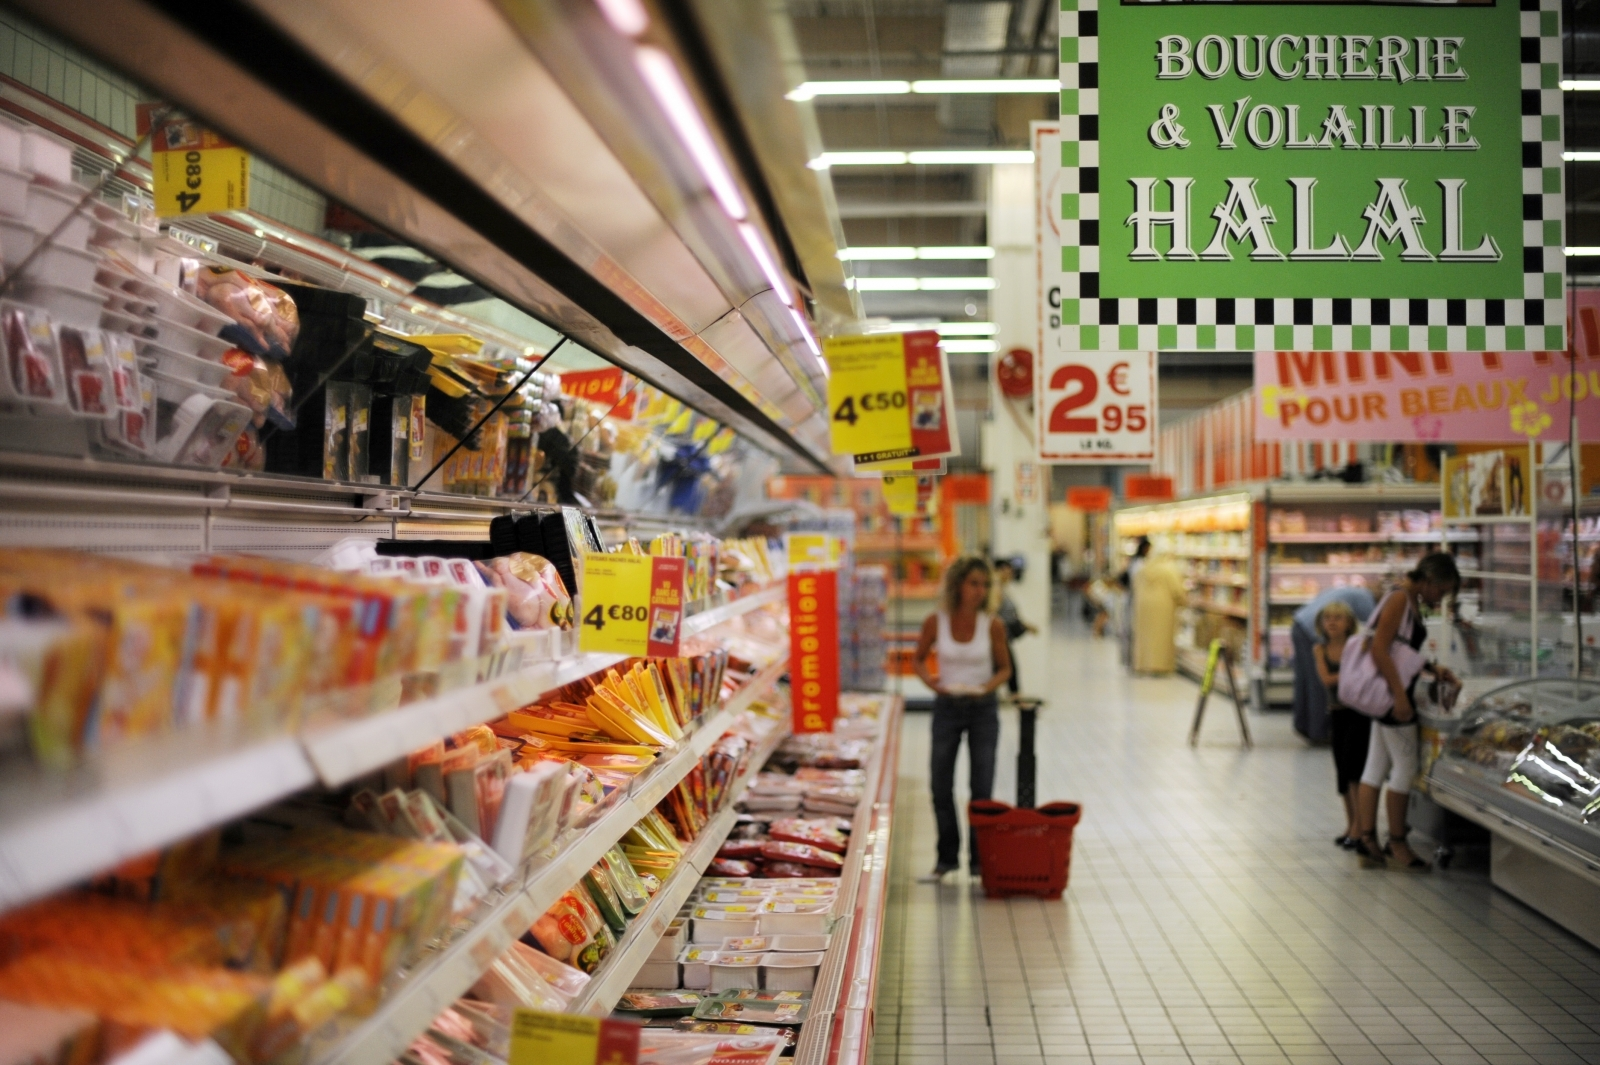 A halal supermarket in France has been shut down by a Parisian court after it refused to sell alcohol and pork